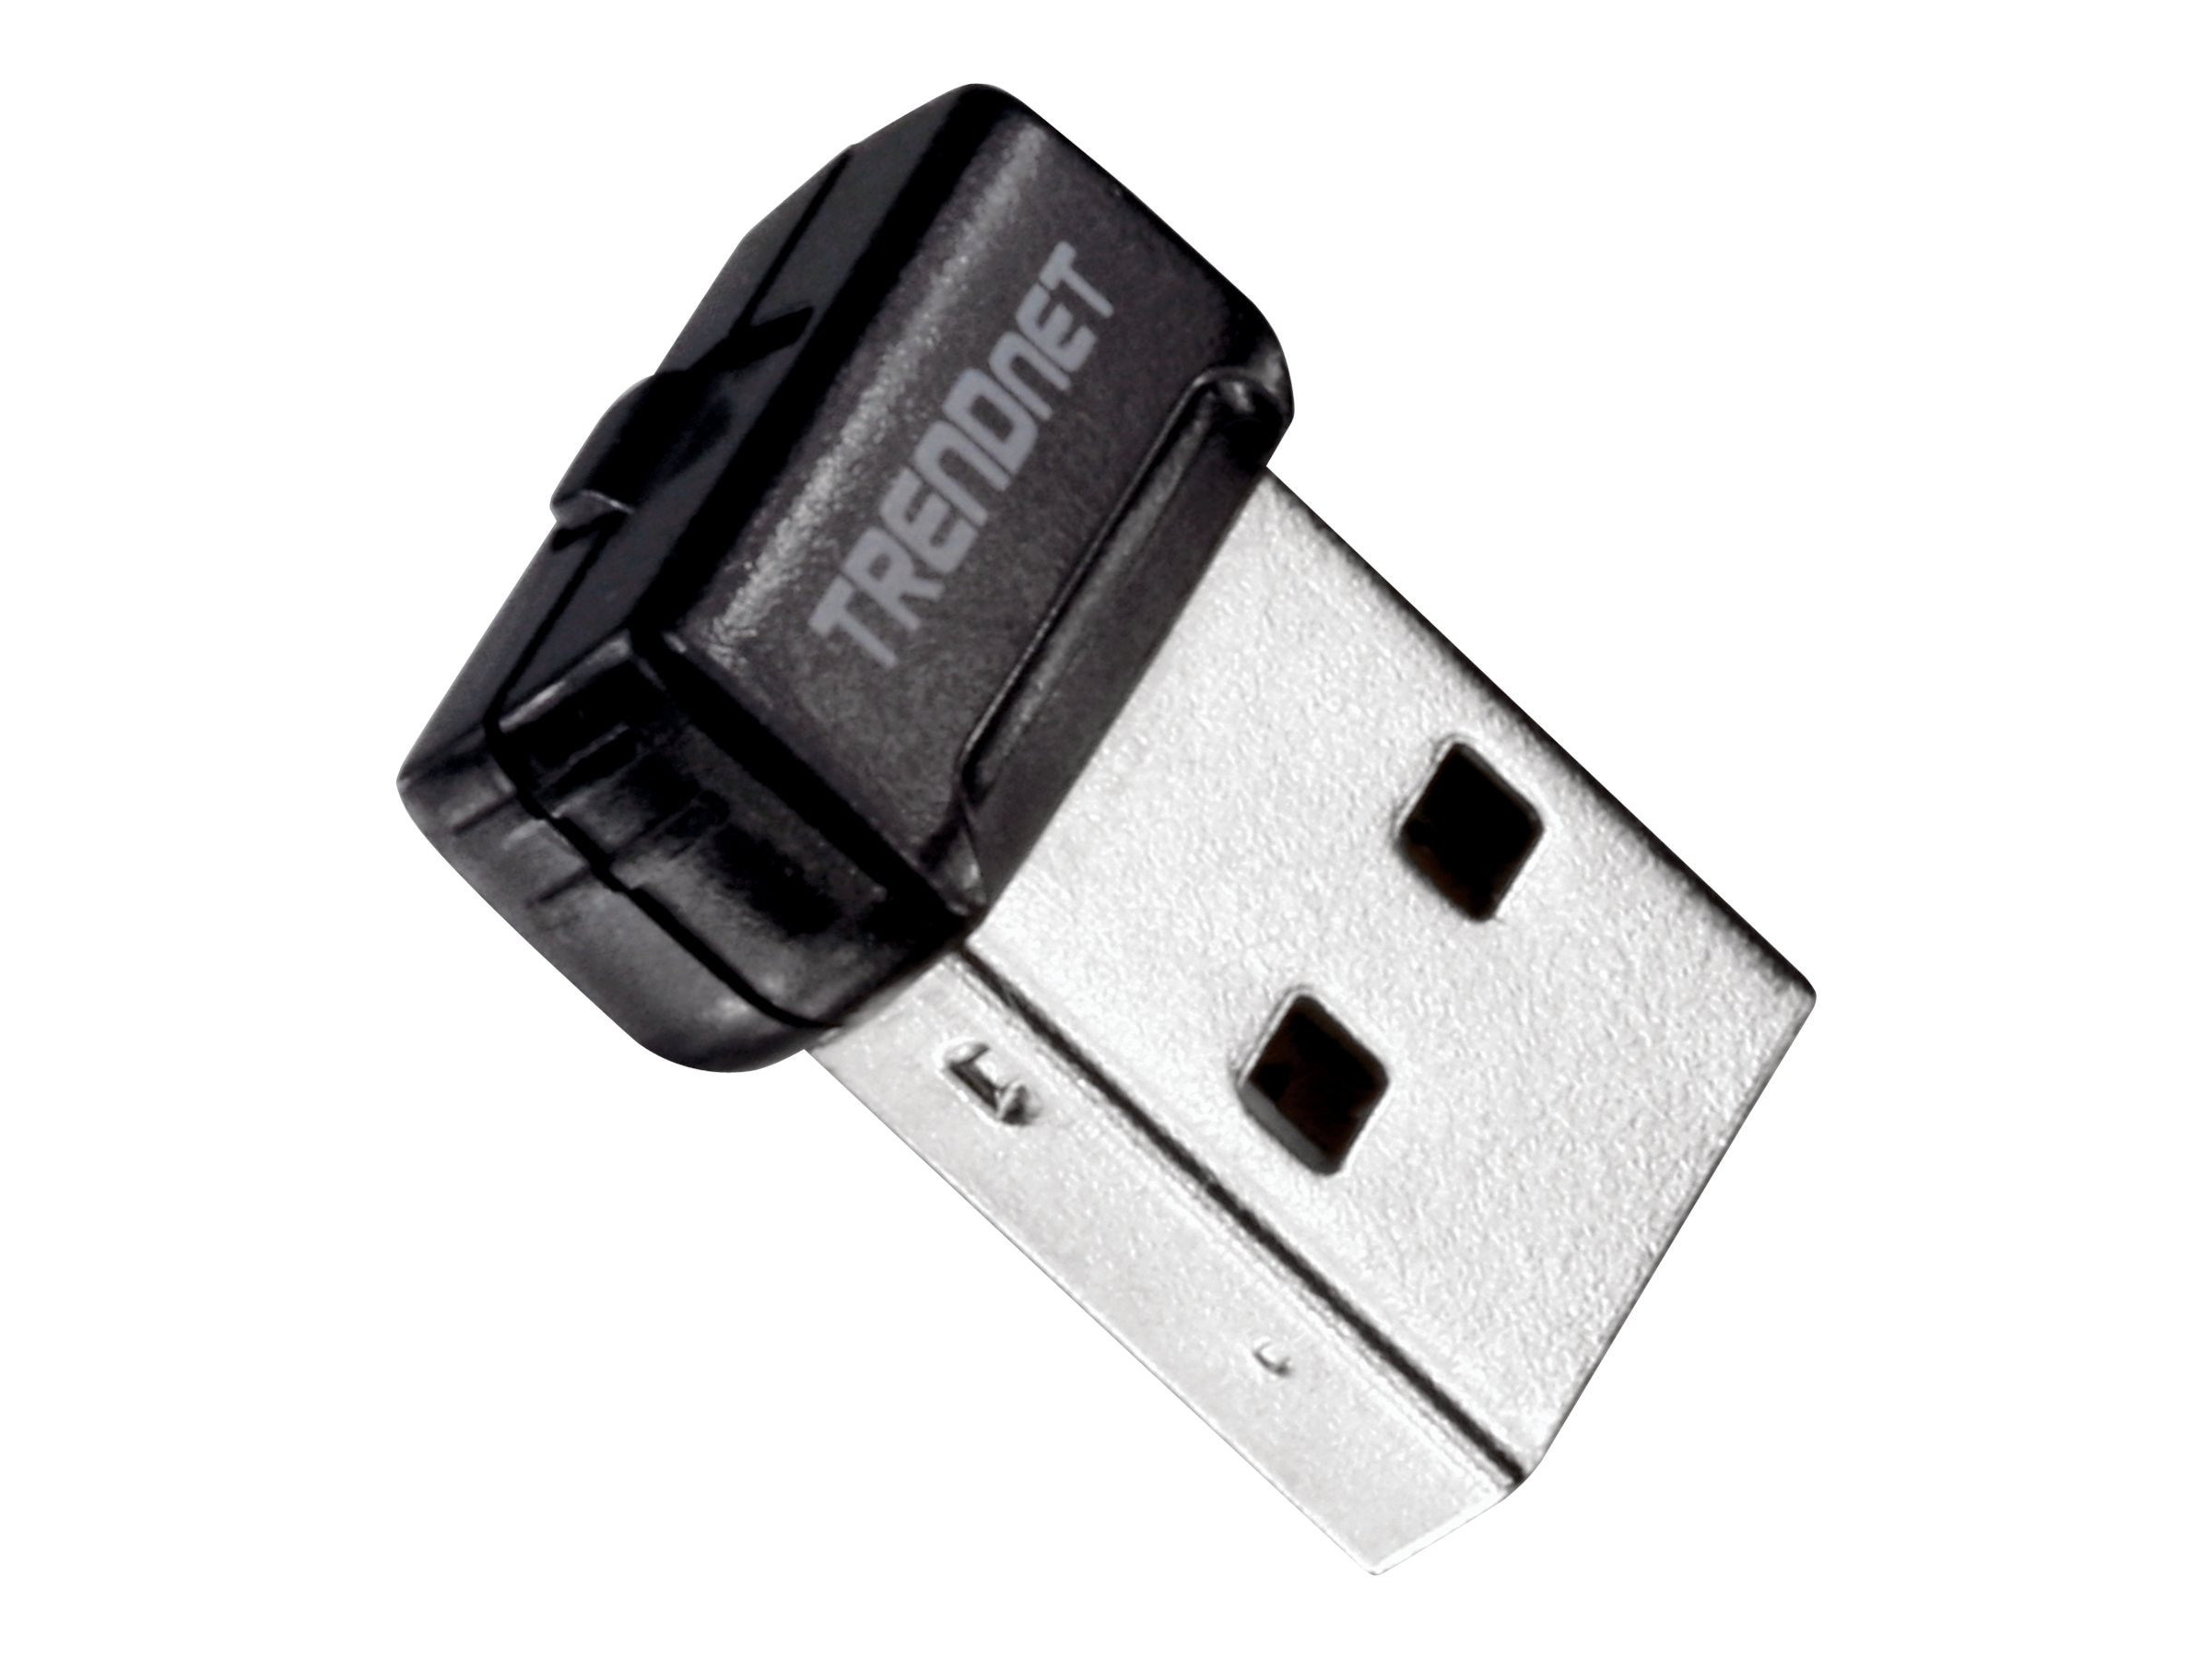 TRENDnet Micro Wireless N USB Adapter, TEW-648UBM